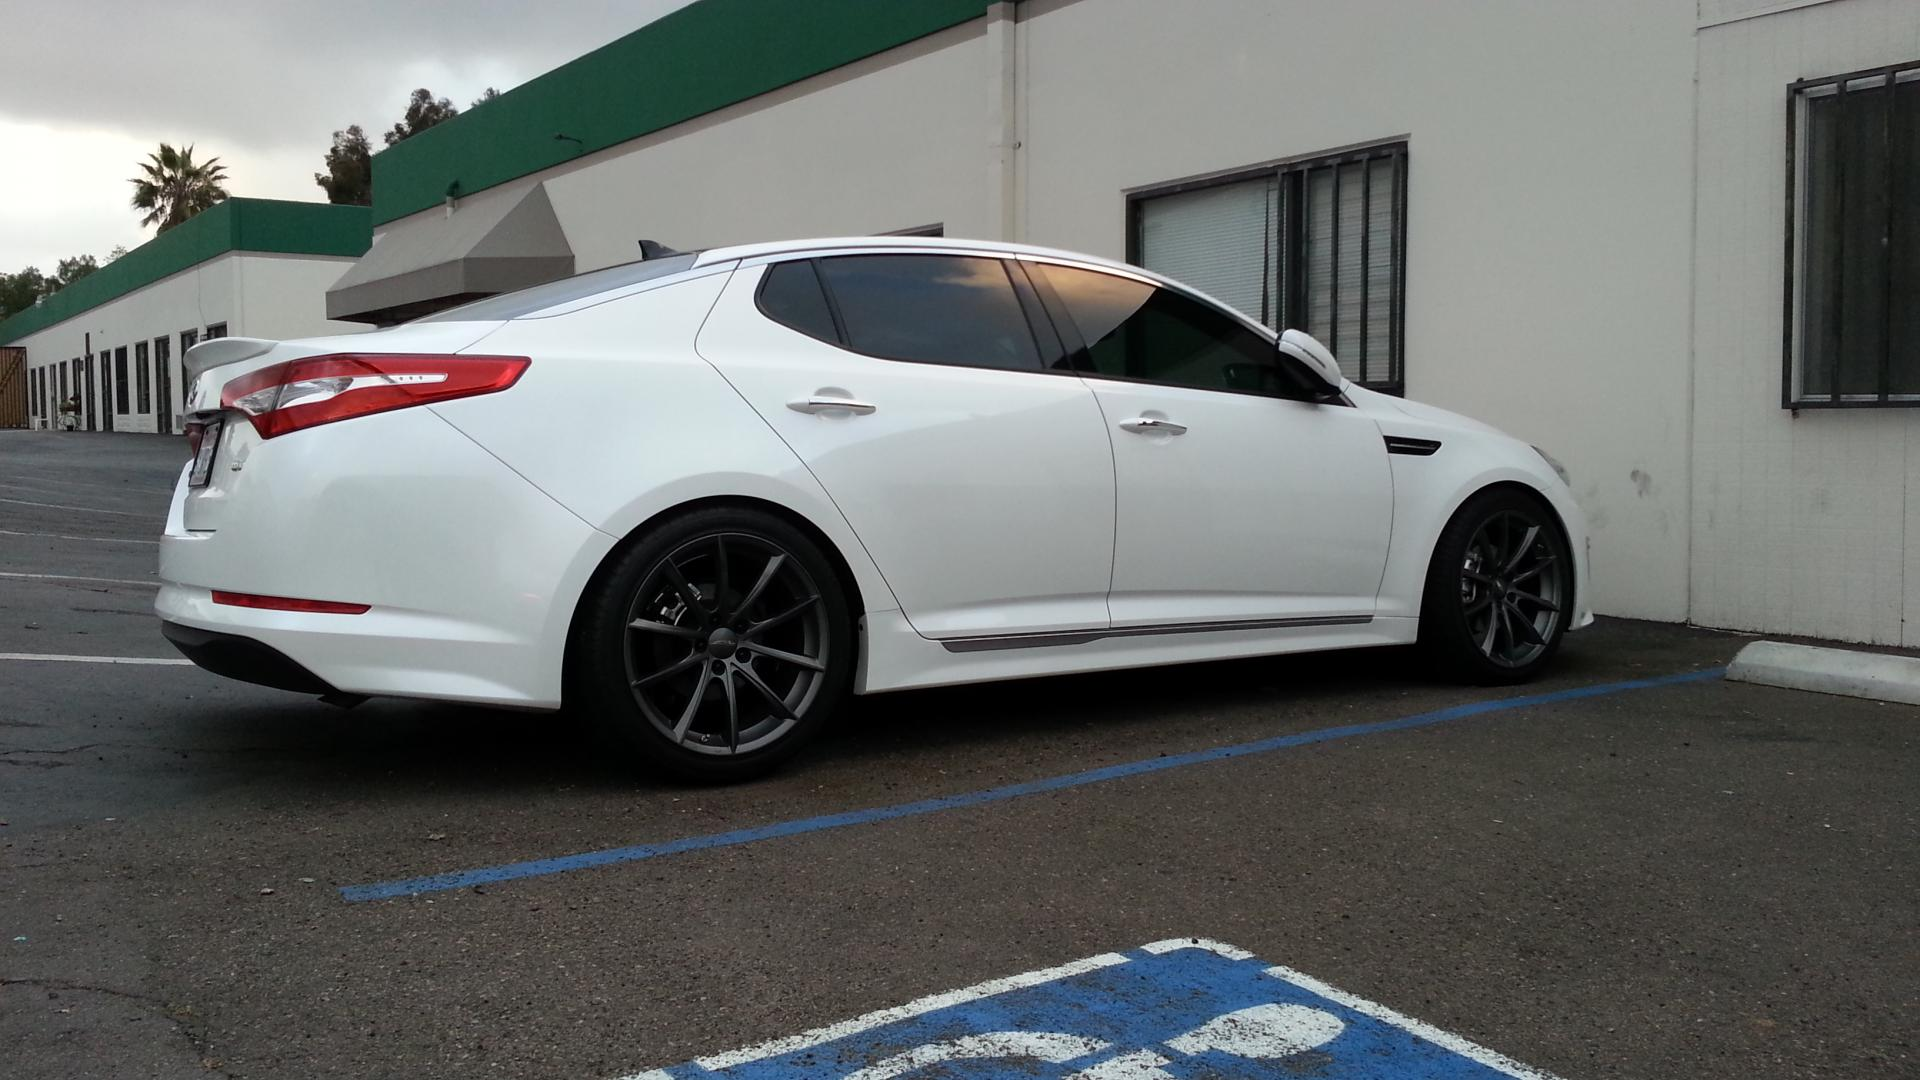 New wheels and lowering springs - Hybrid